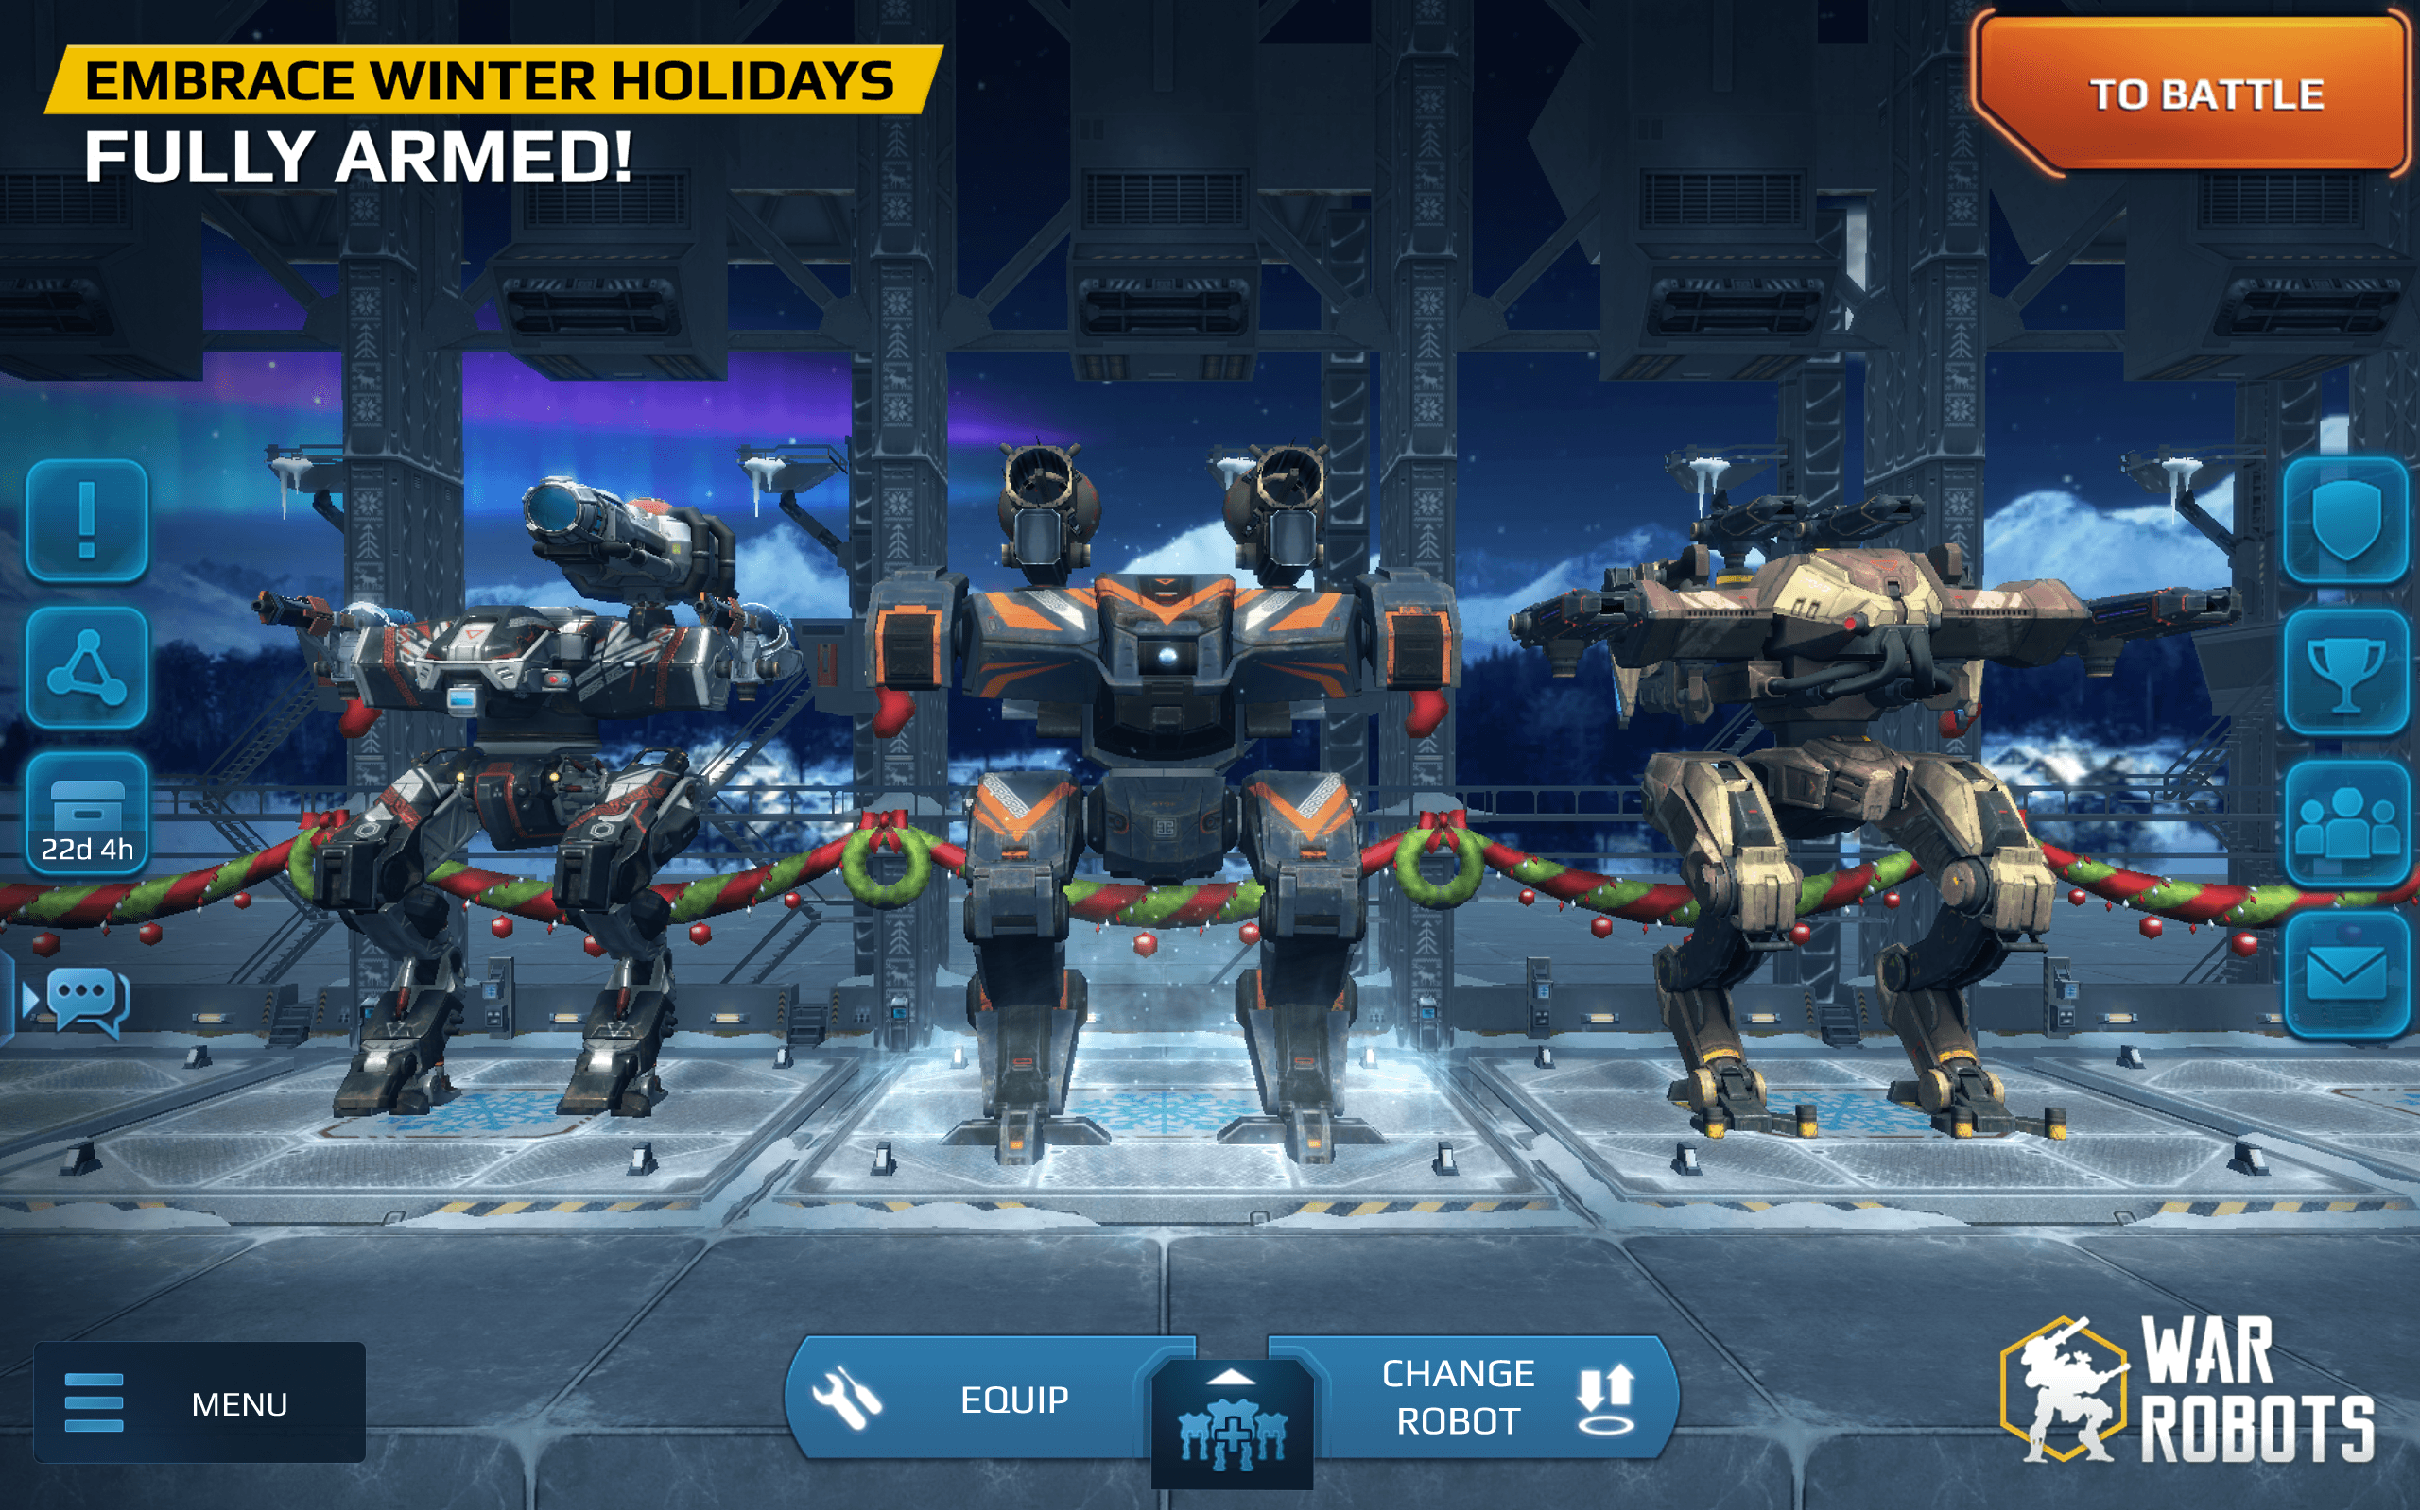 Download War Robots on PC with BlueStacks